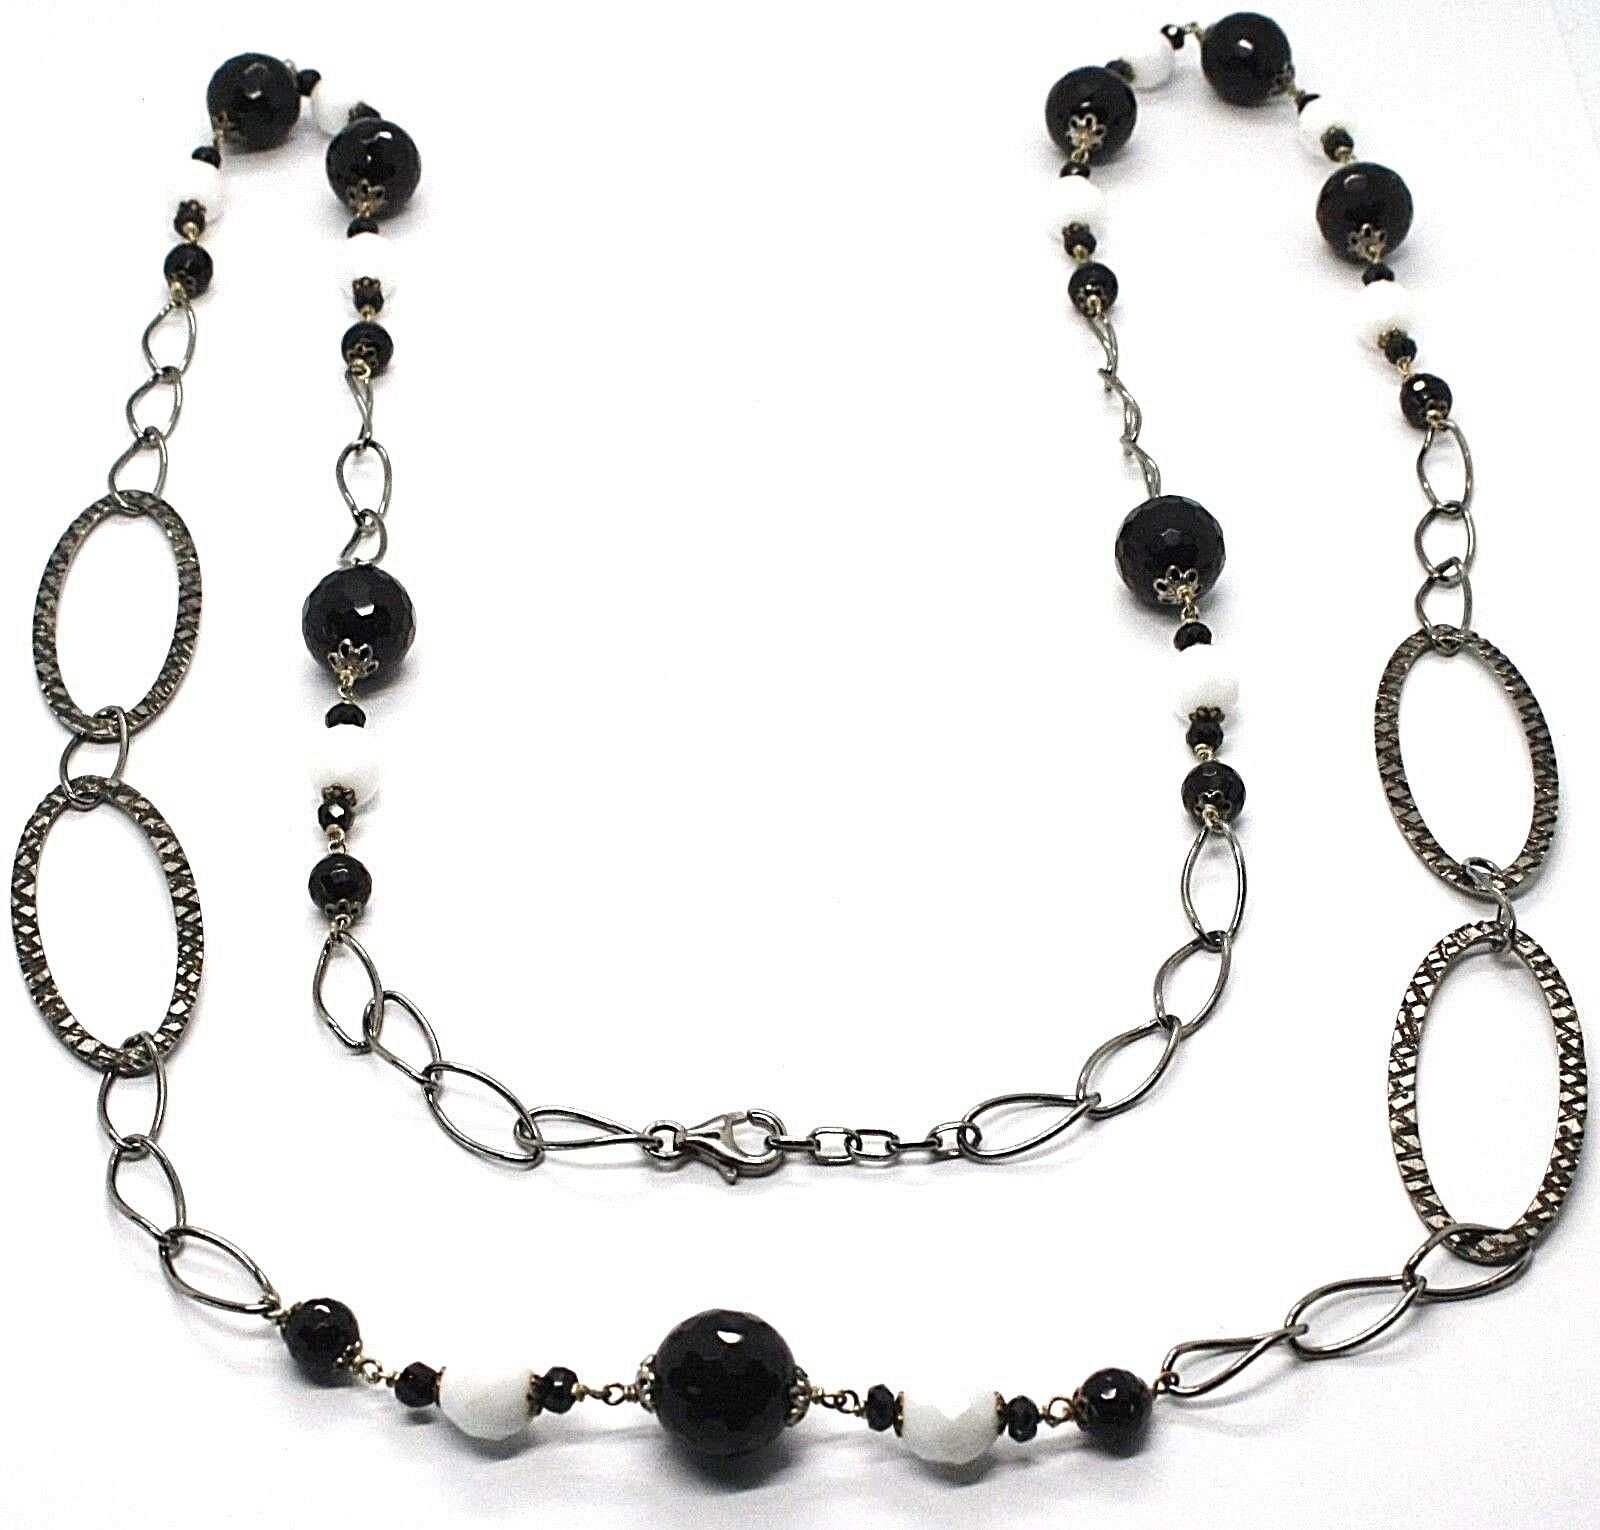 Necklace Silver 925 Burnished,Onyx,Spinel,Length 100 cm, Chain Oval